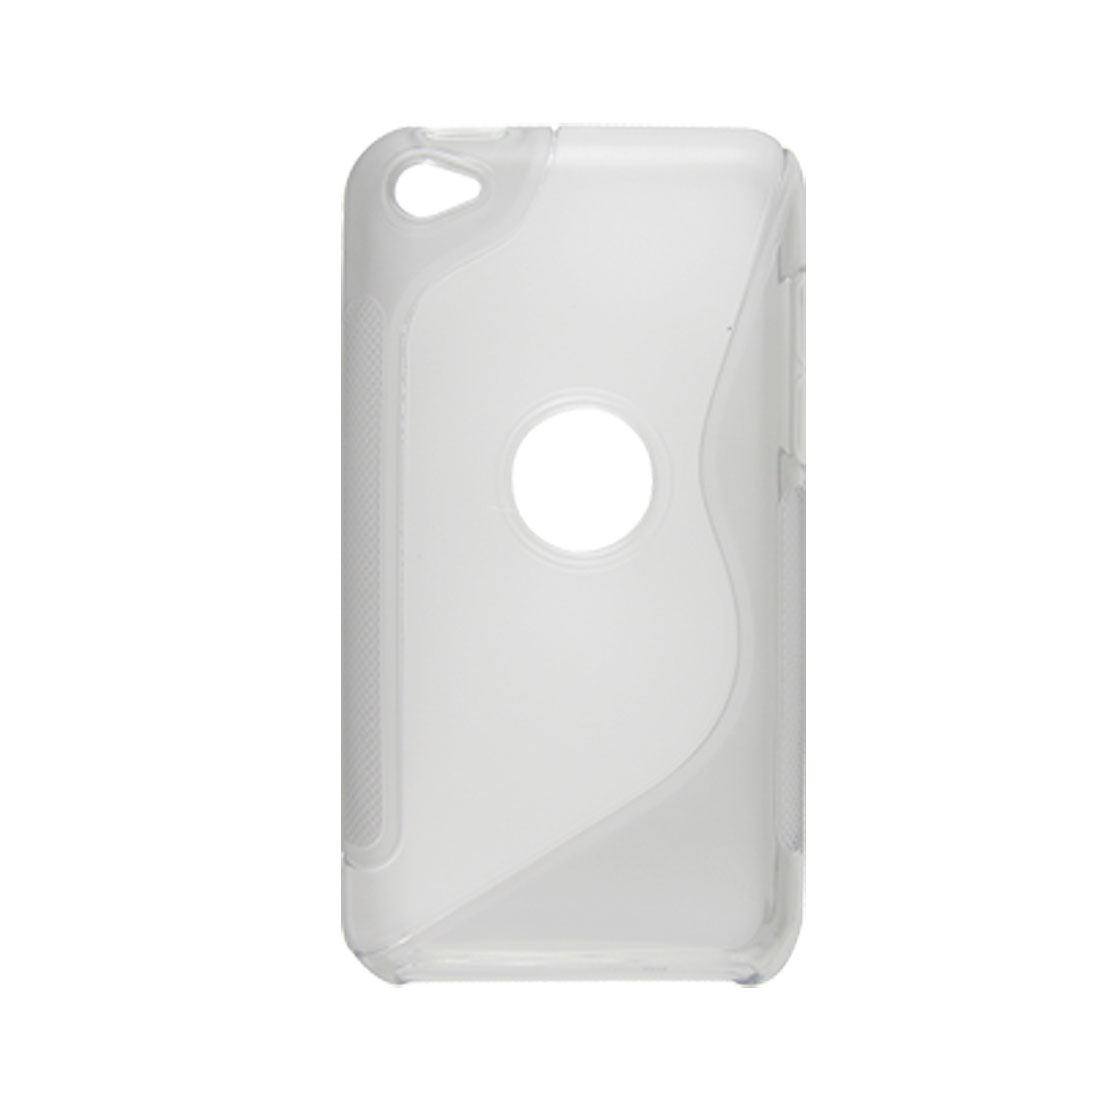 Clear Gray Two-tone Soft Plastic Back Hole Case for iPod Touch 4G